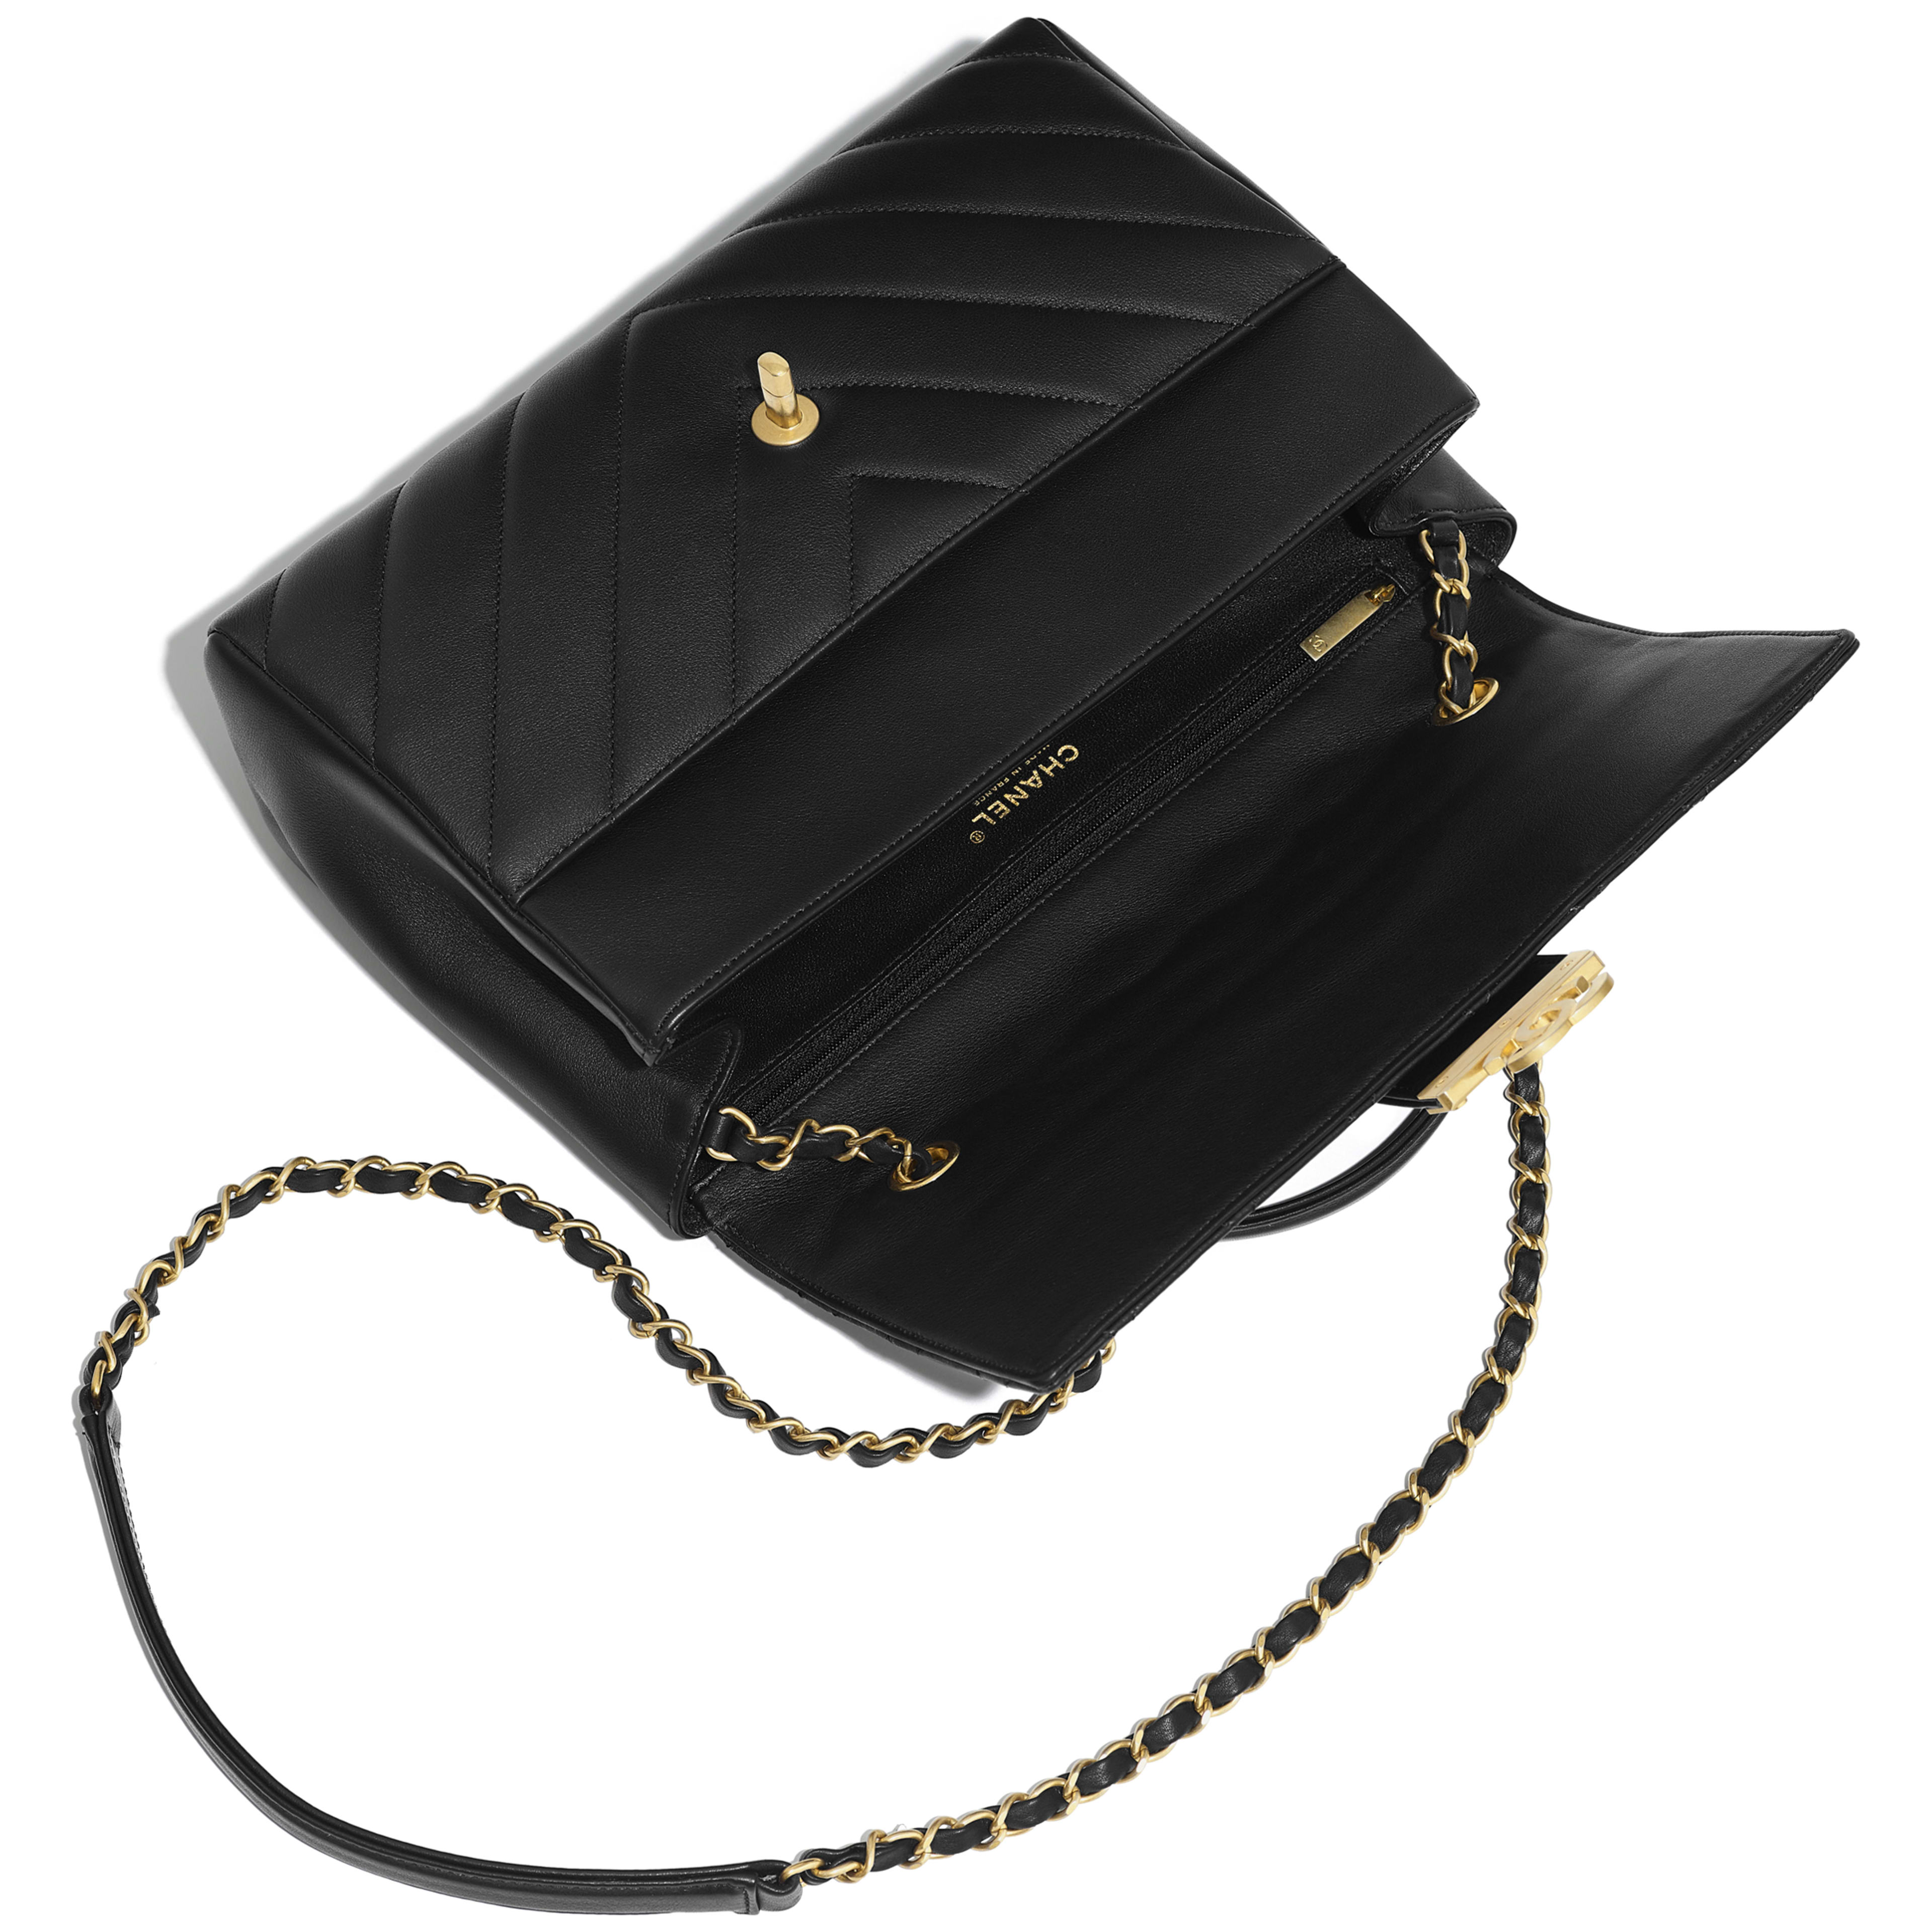 Flap Bag with Top Handle - Black - Calfskin & Gold-Tone Metal - Other view - see full sized version